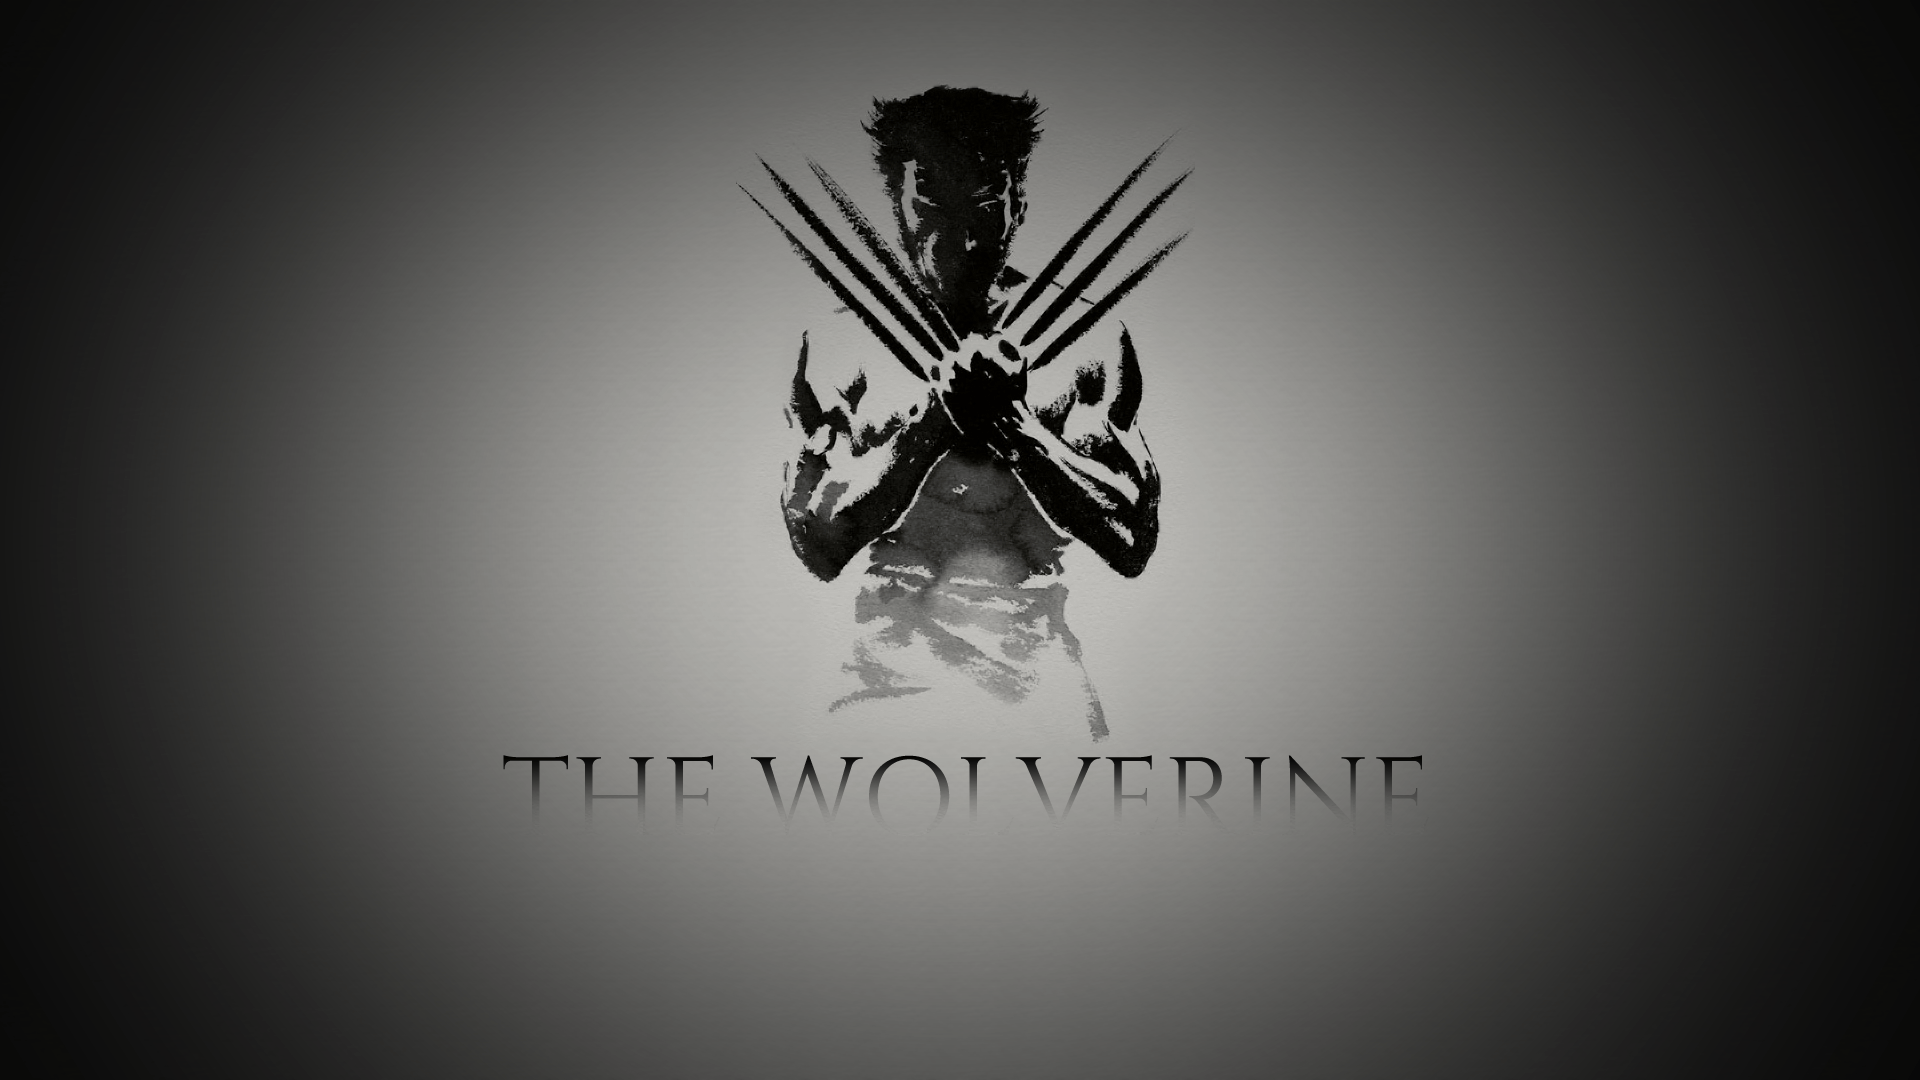 The Wolverine image The Wolverine HD wallpapers and backgrounds